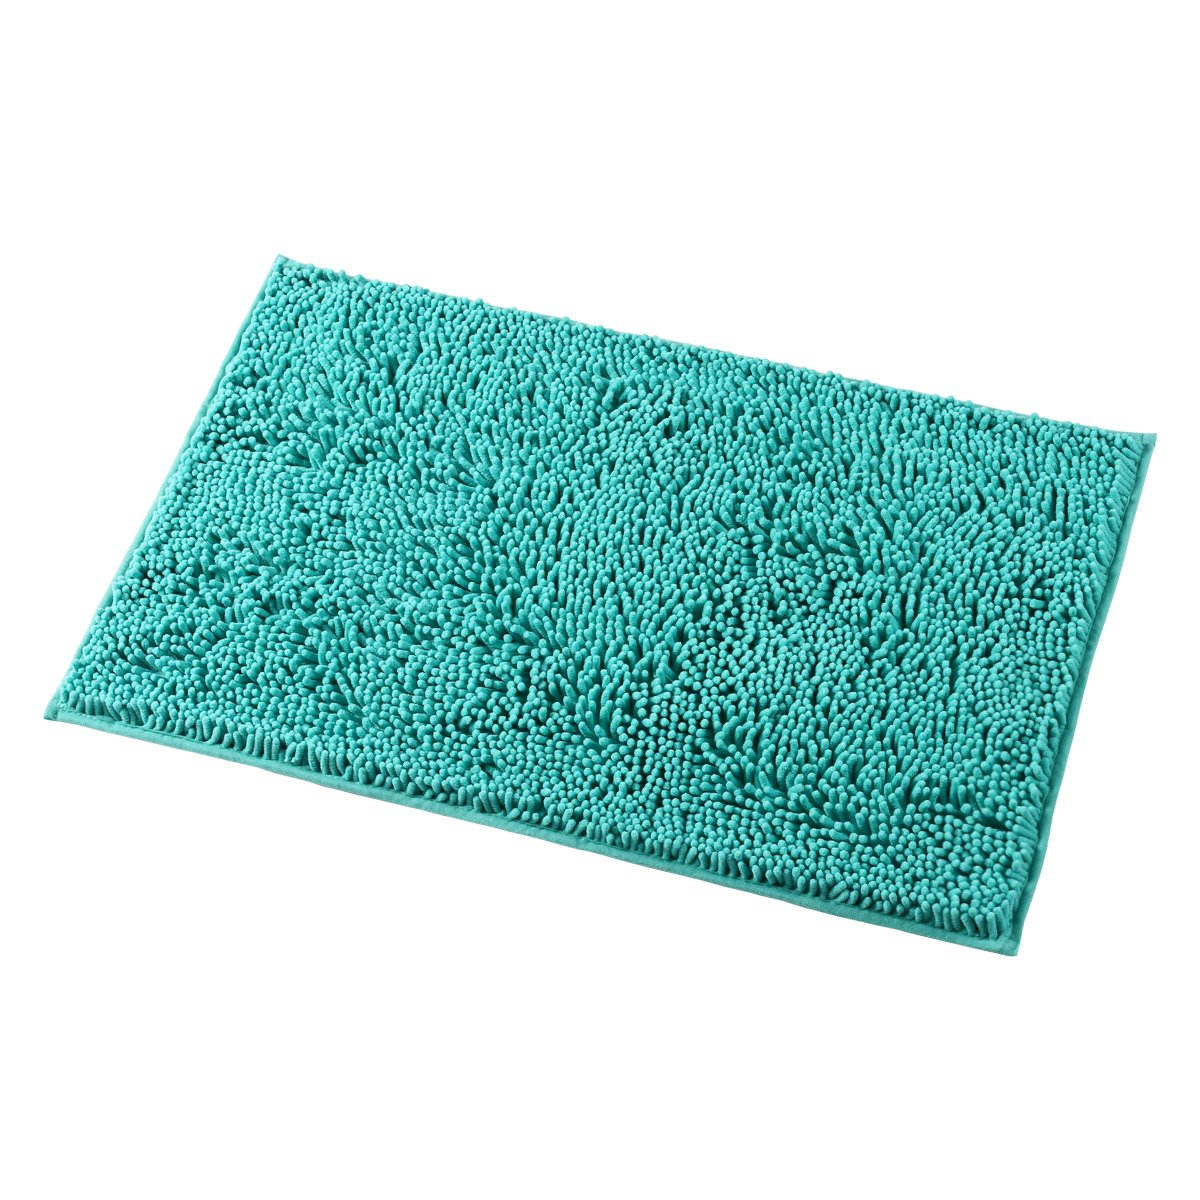 "MAYSHINE Non-Slip Bathroom Rug Shag Shower Mat Machine-Washable Bath Mats with Water Absorbent Soft Microfibers, 20"" W x 32"" L, Turquoise"